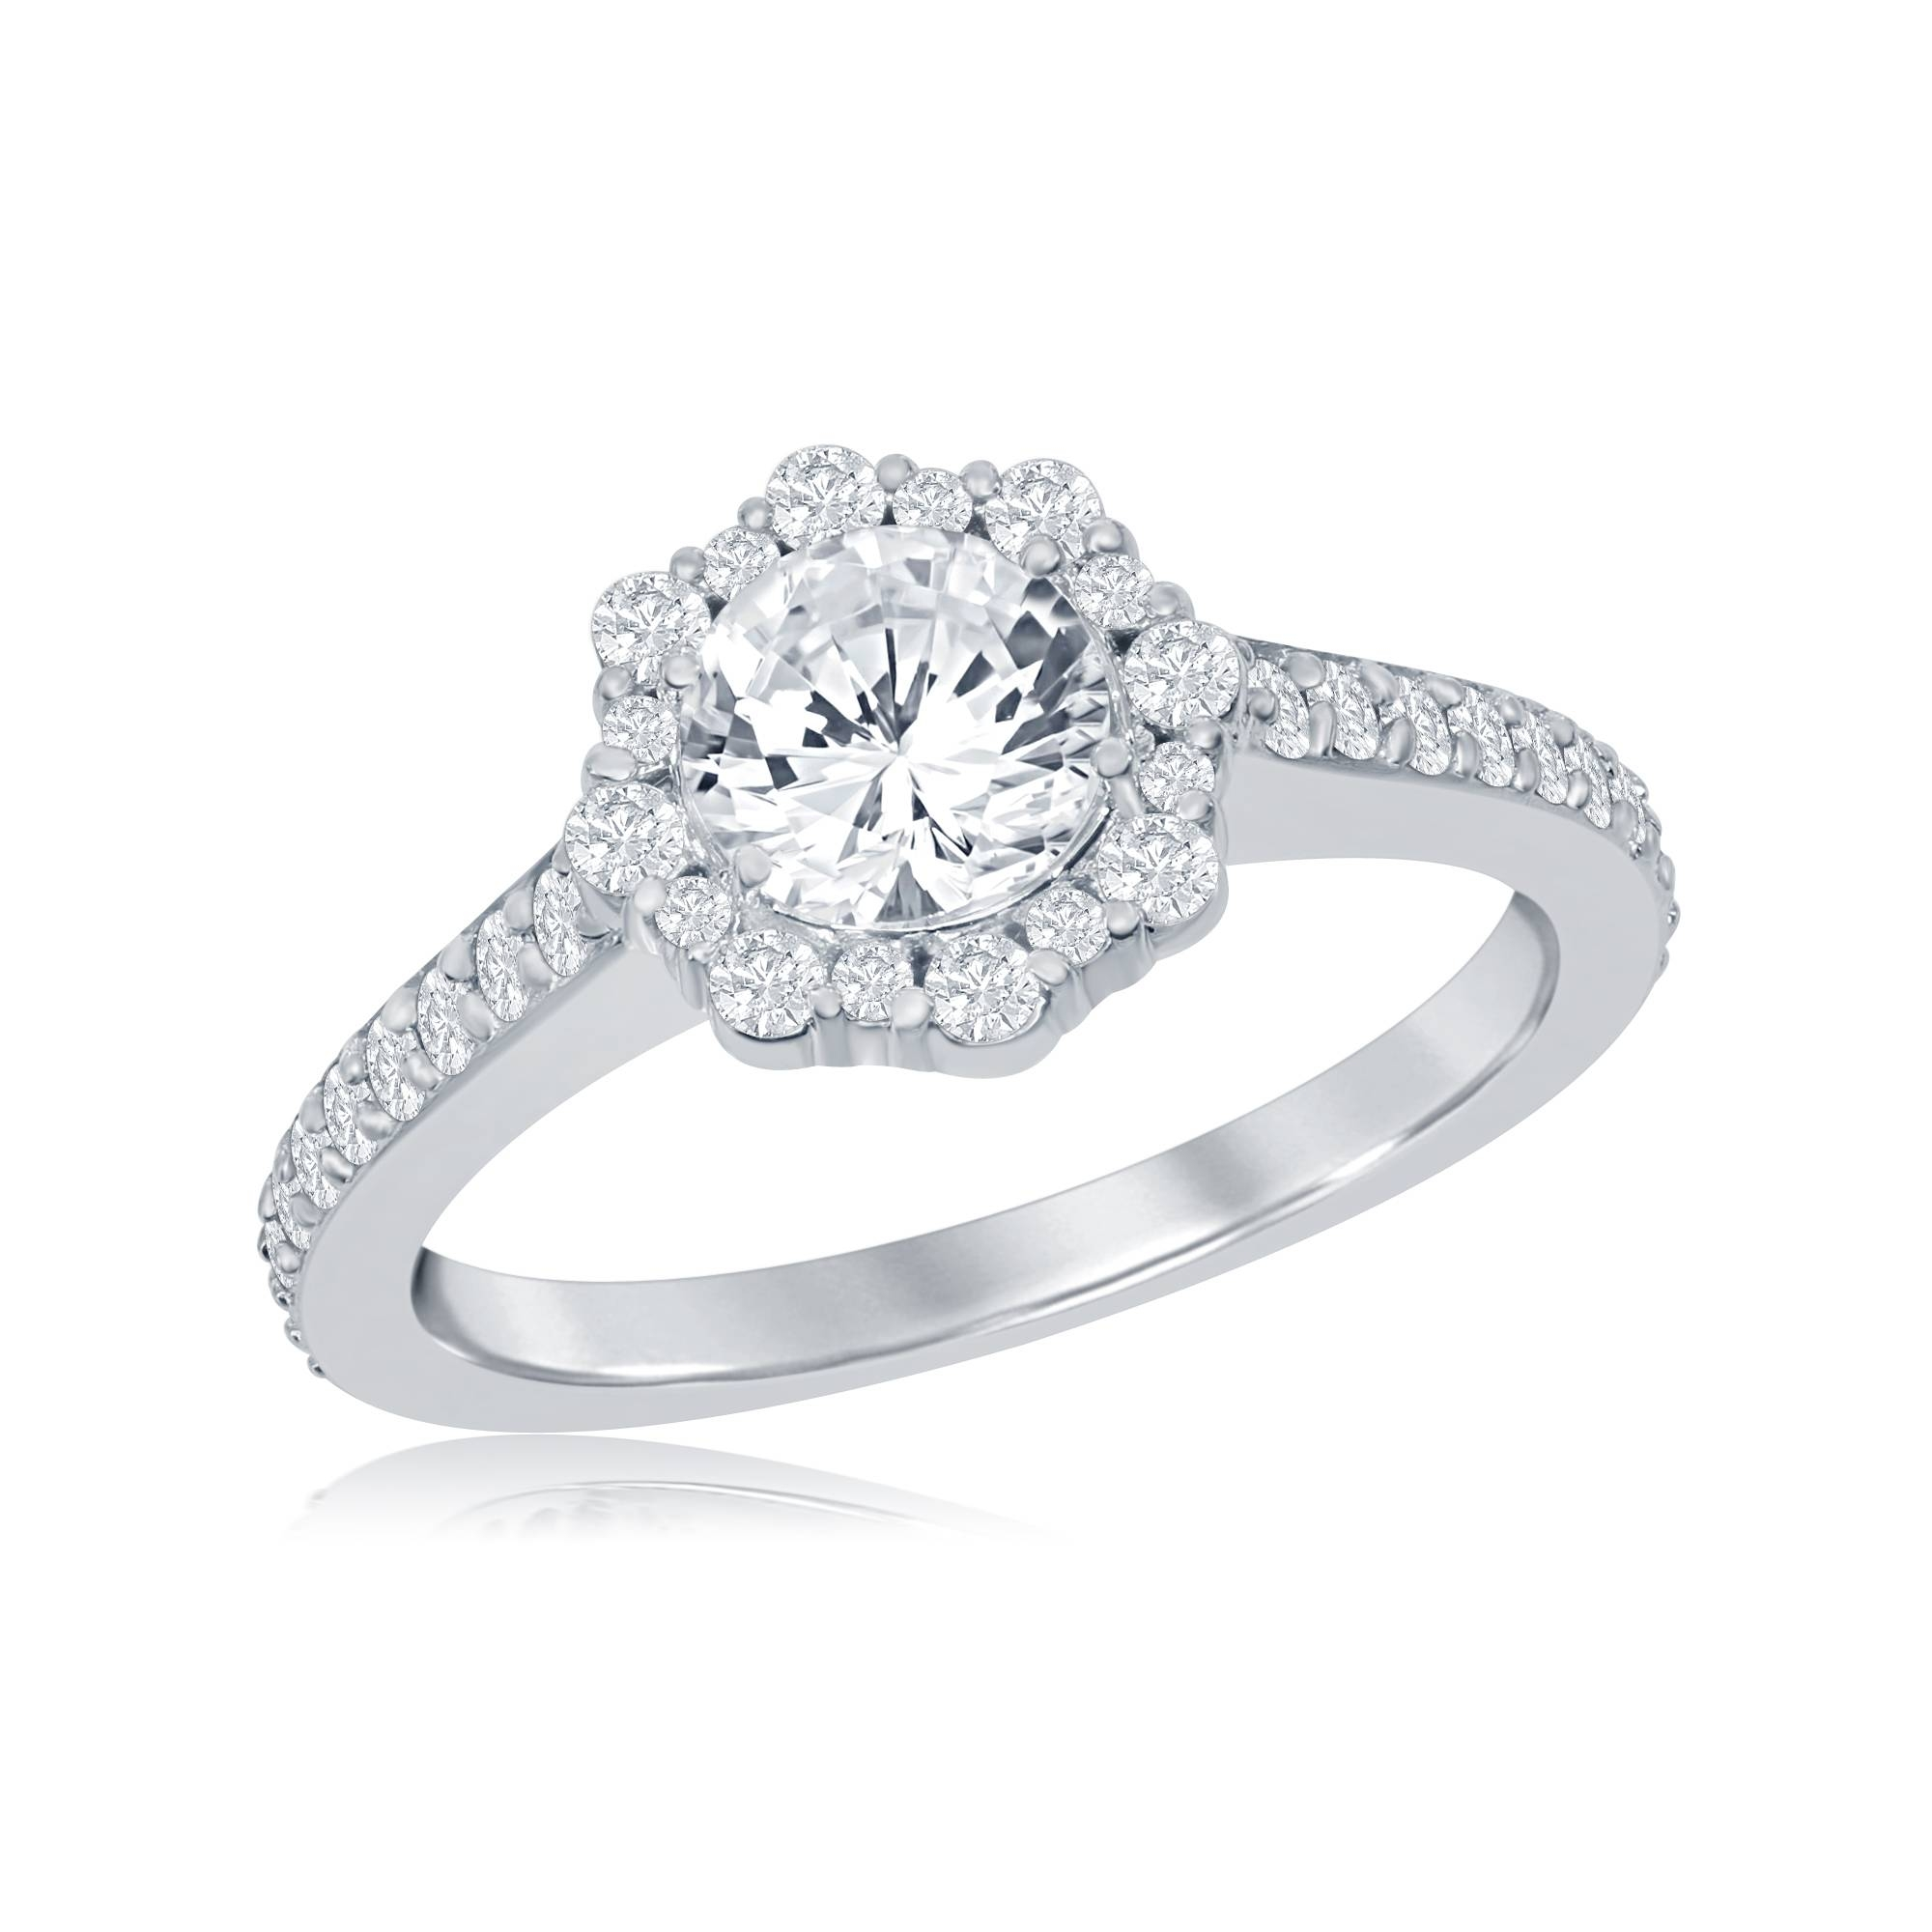 Engagement Rings : B Beautiful Engagement Rings Tampa Diamond Intended For Tampa Engagement Rings (View 2 of 15)